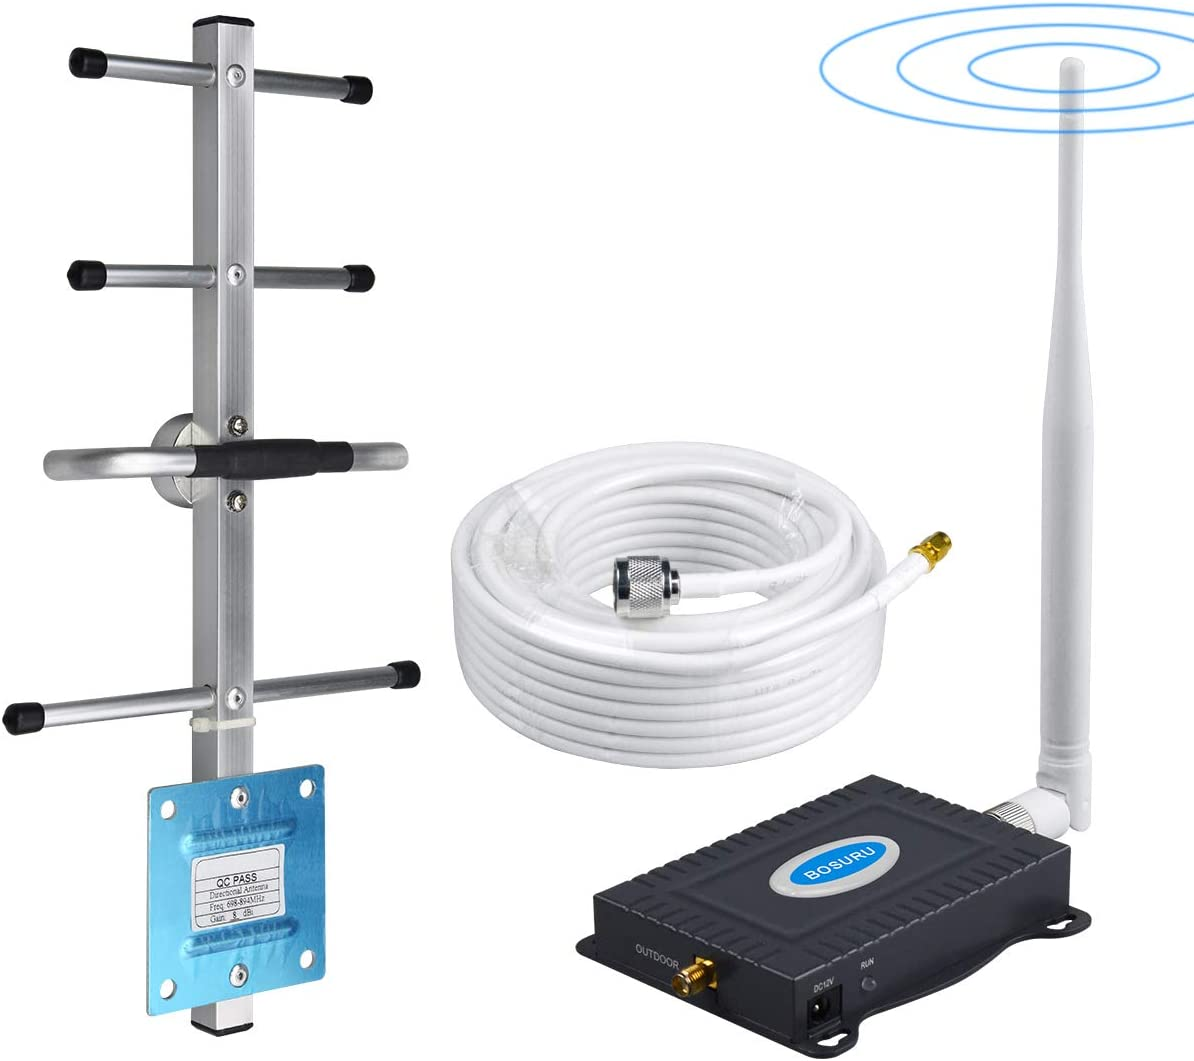 BOSURU Cell Phone Signal Booster